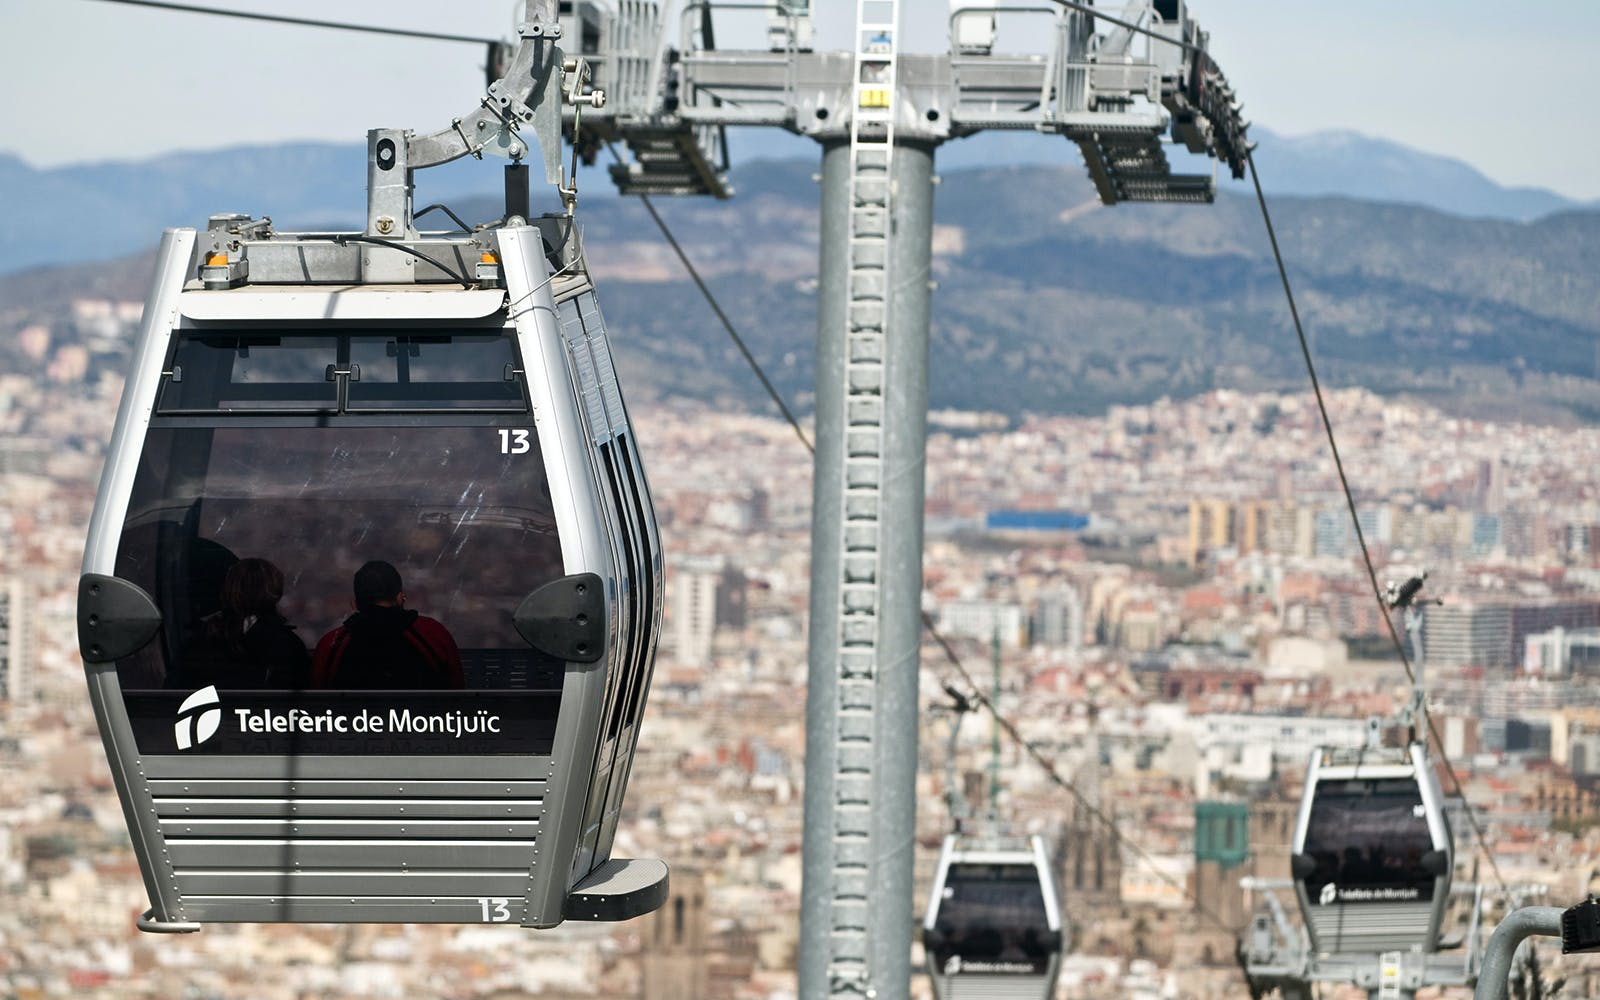 teleferic de montjuic/ montjuic cable car-3